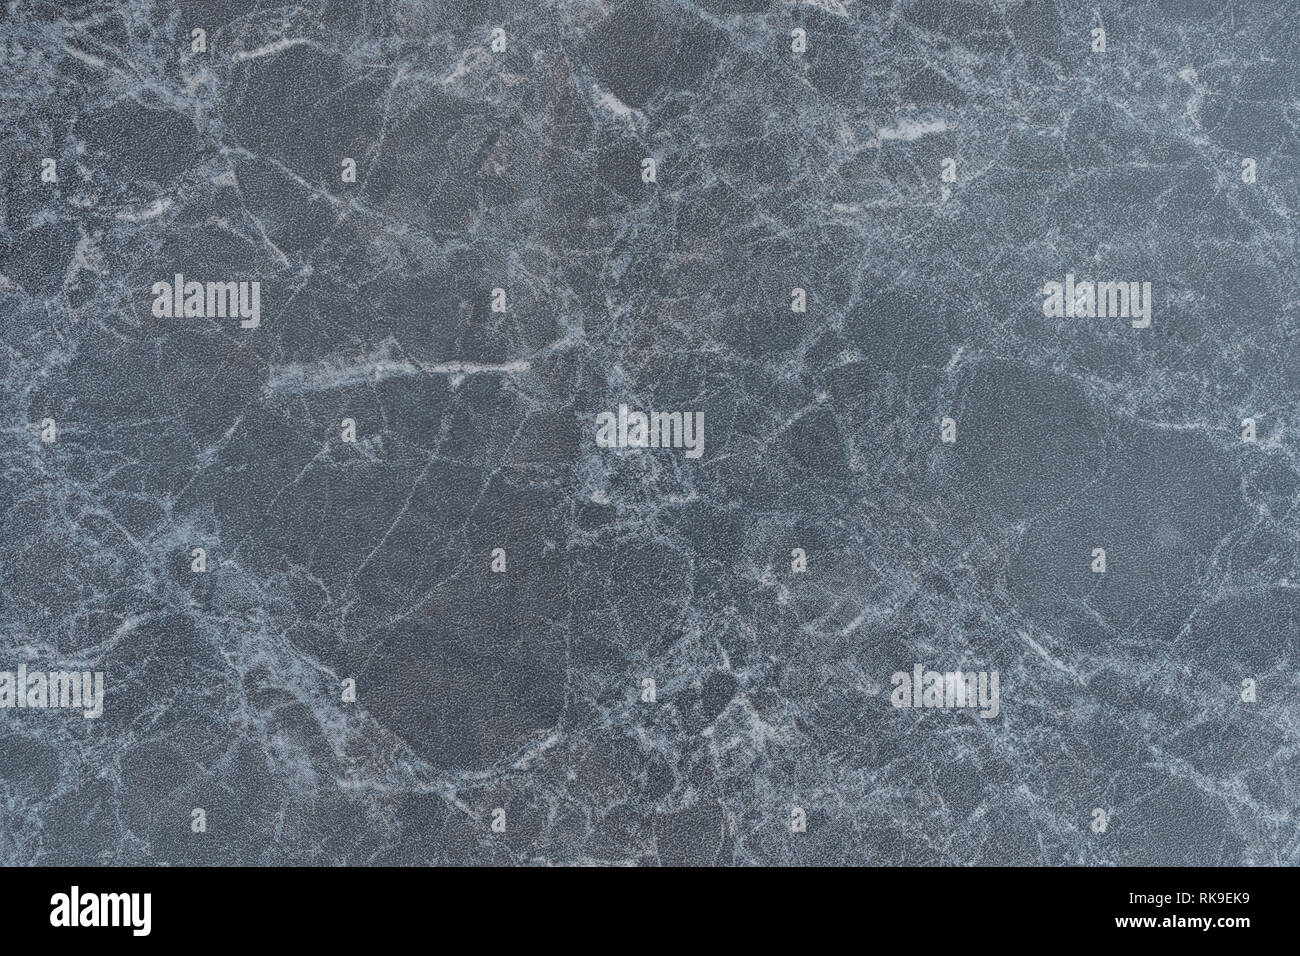 Black marble is a rock composed of recrystallized carbonate minerals - Stock Image